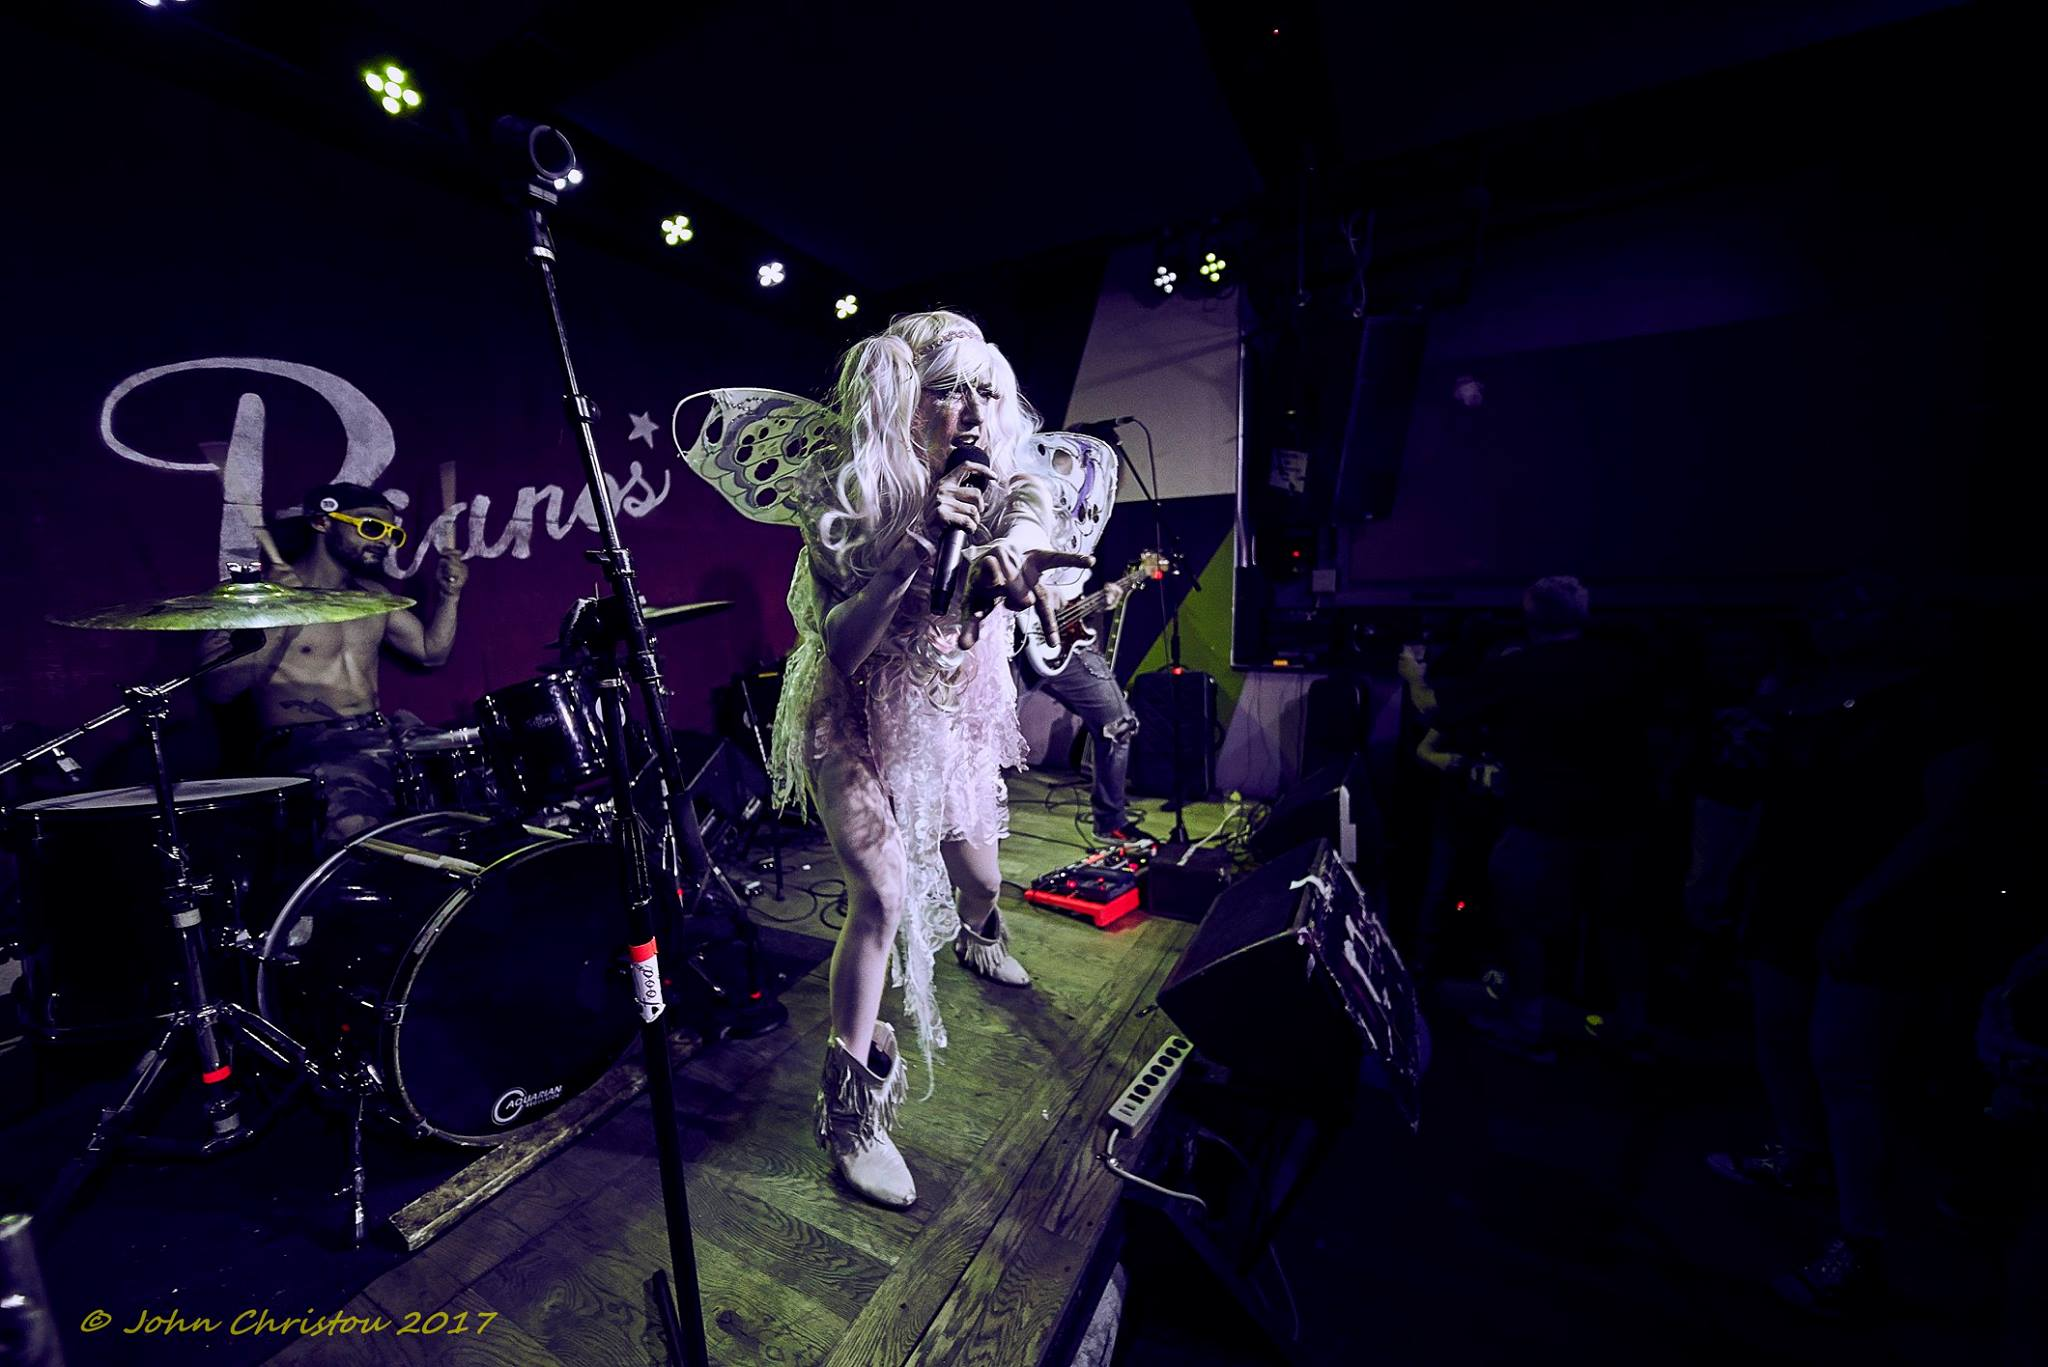 j and the 9s live at Pianos NYC Photo Credit: John Christou